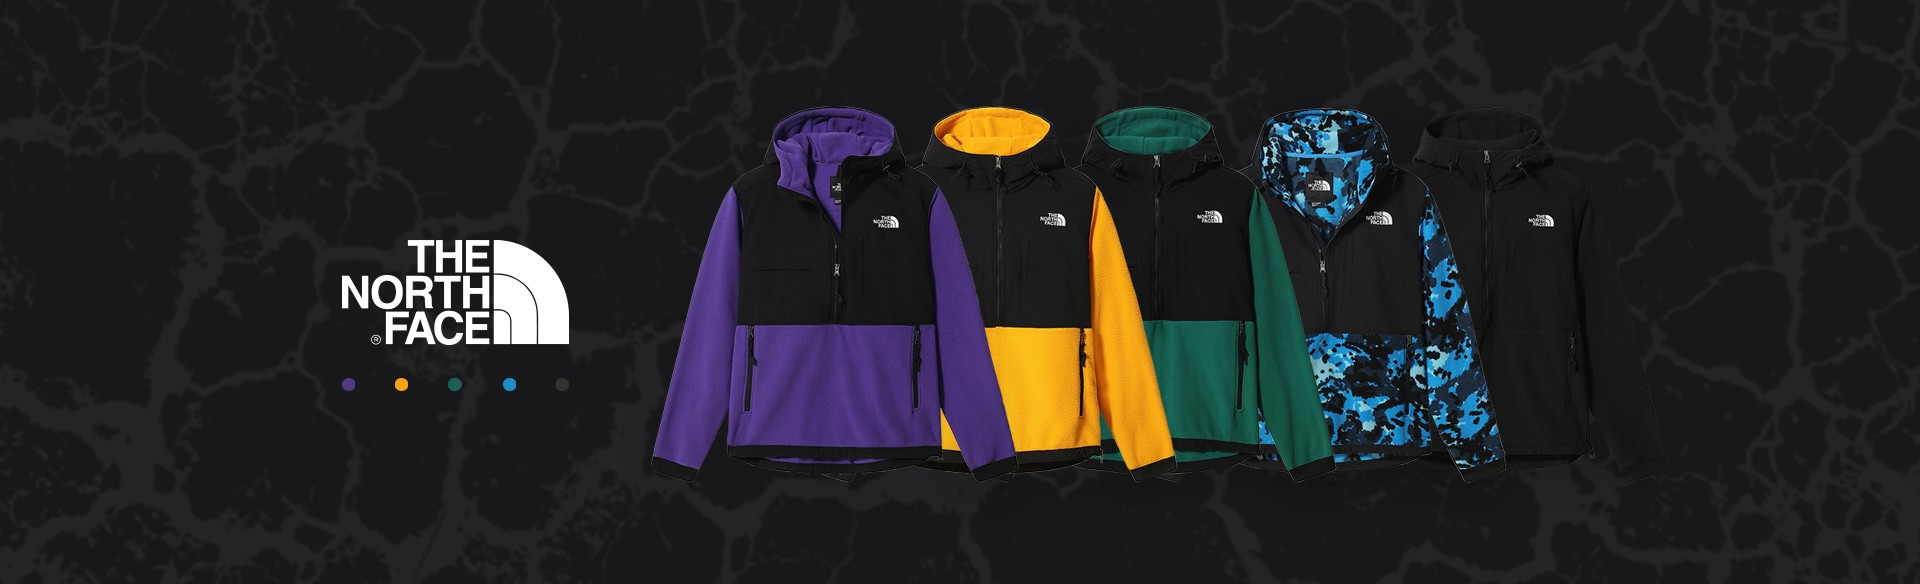 The North Face Alpine Clothing